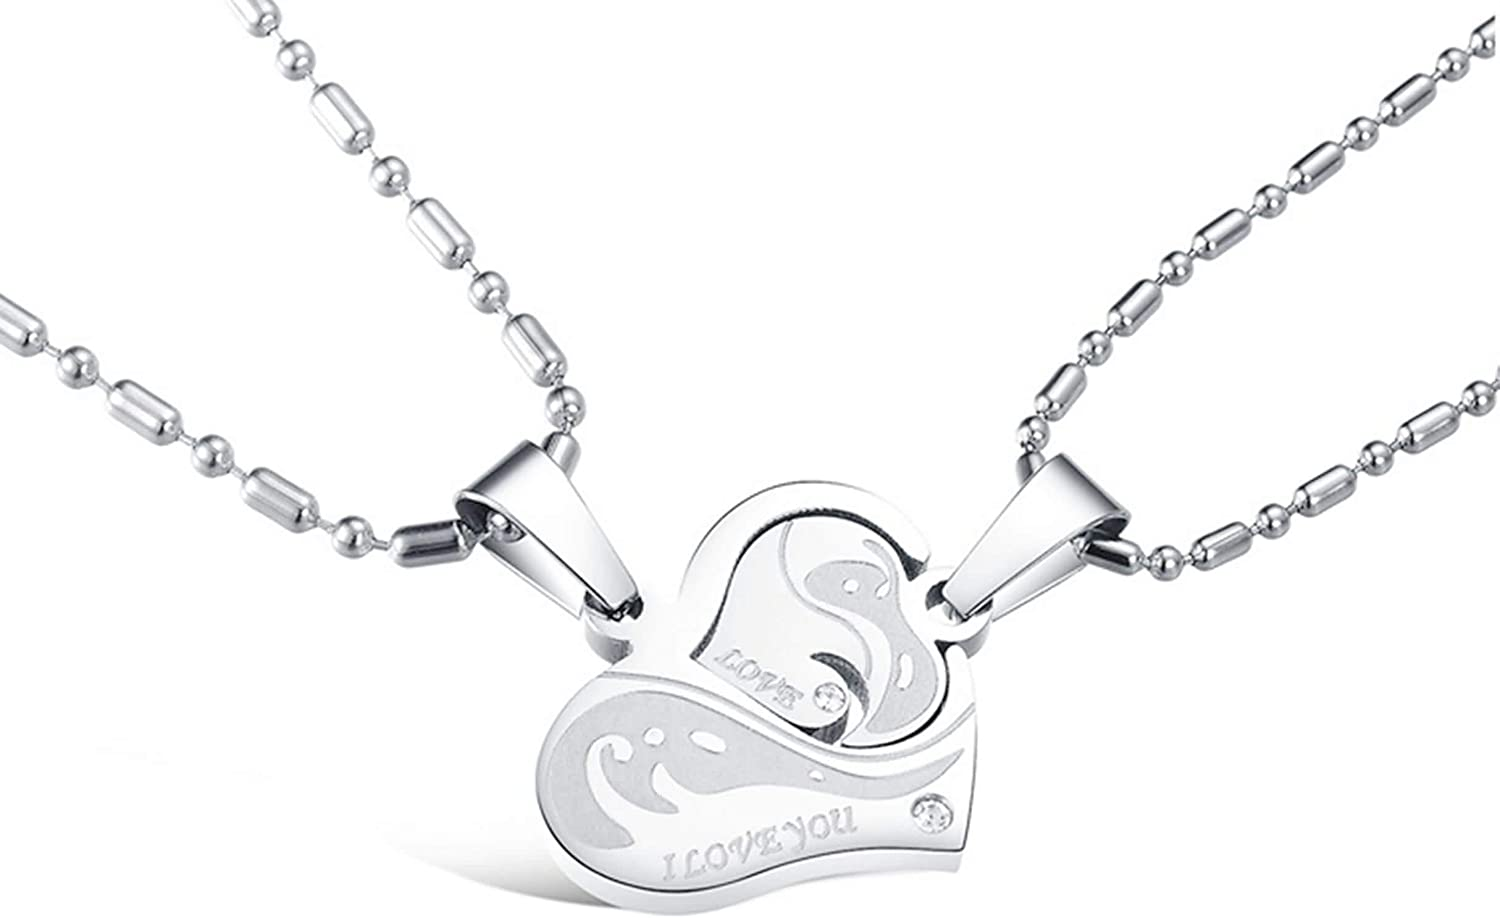 Couple Stainless Steel Pendant Necklace For mens womens Love Heart Puzzle Crystal CZ Zirconia Silver Aooaz Jewelry